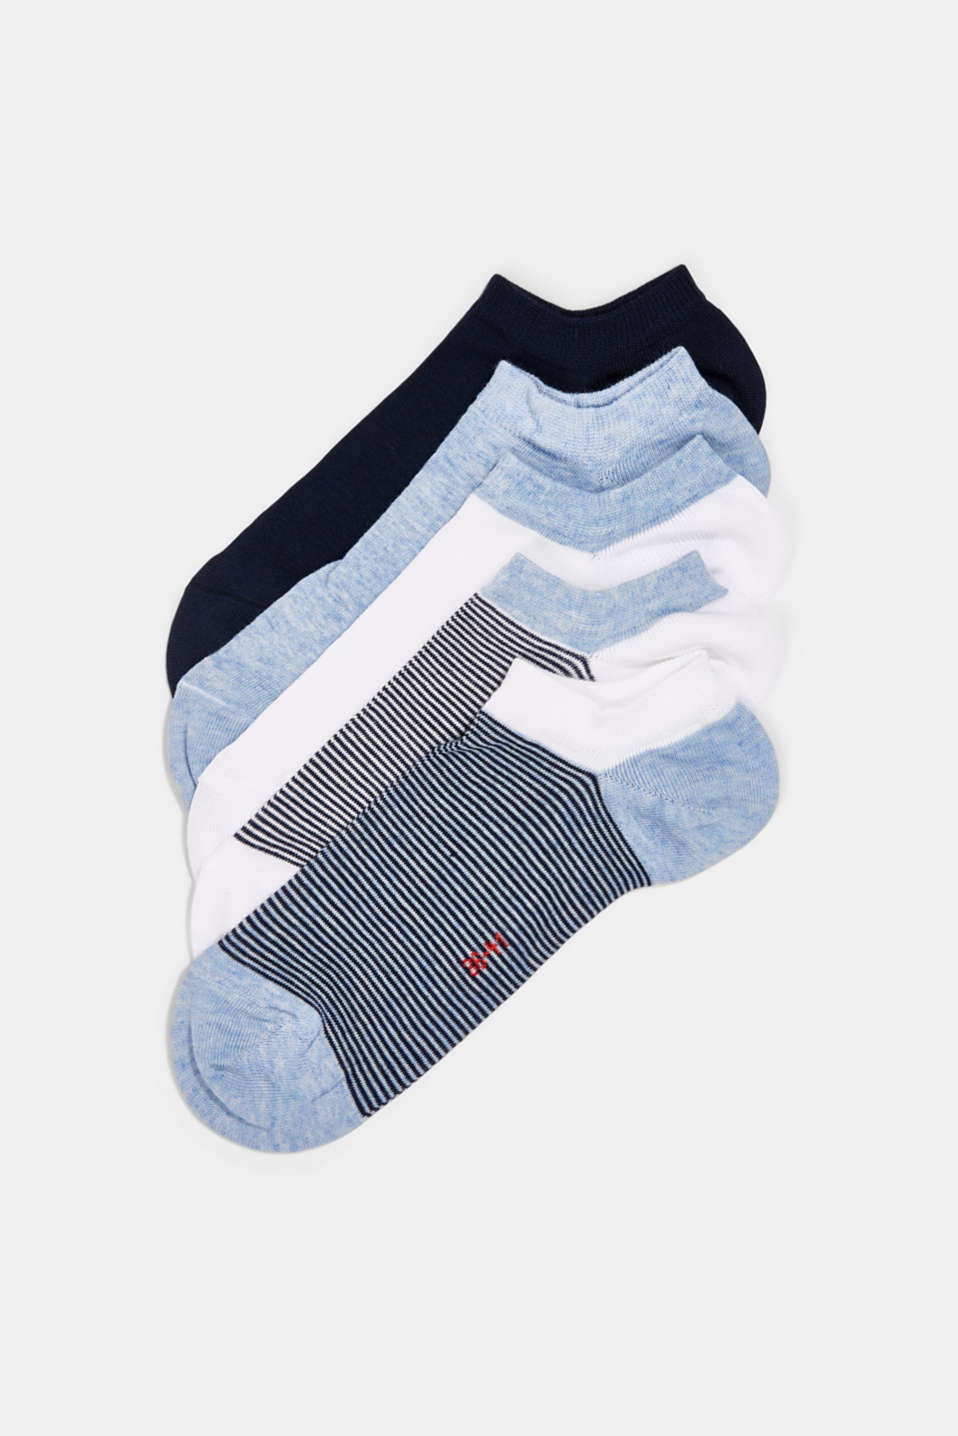 Esprit - mixed stripe sneaker socks